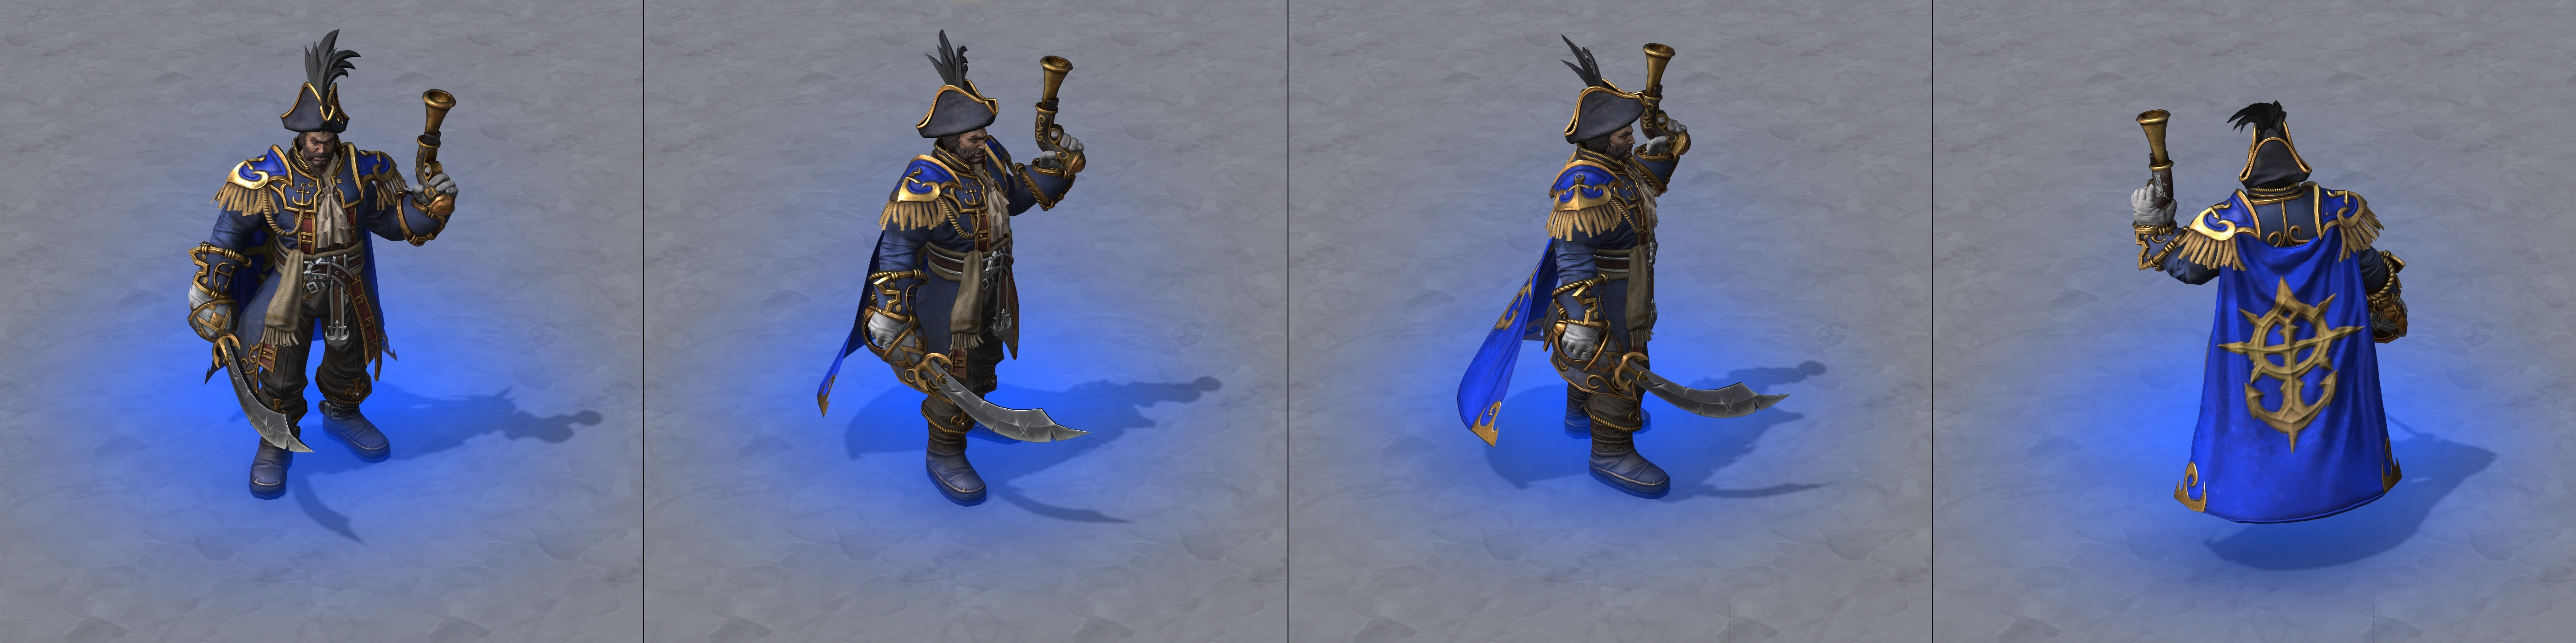 Warcraft III Reforged : Amiral Proudmoore